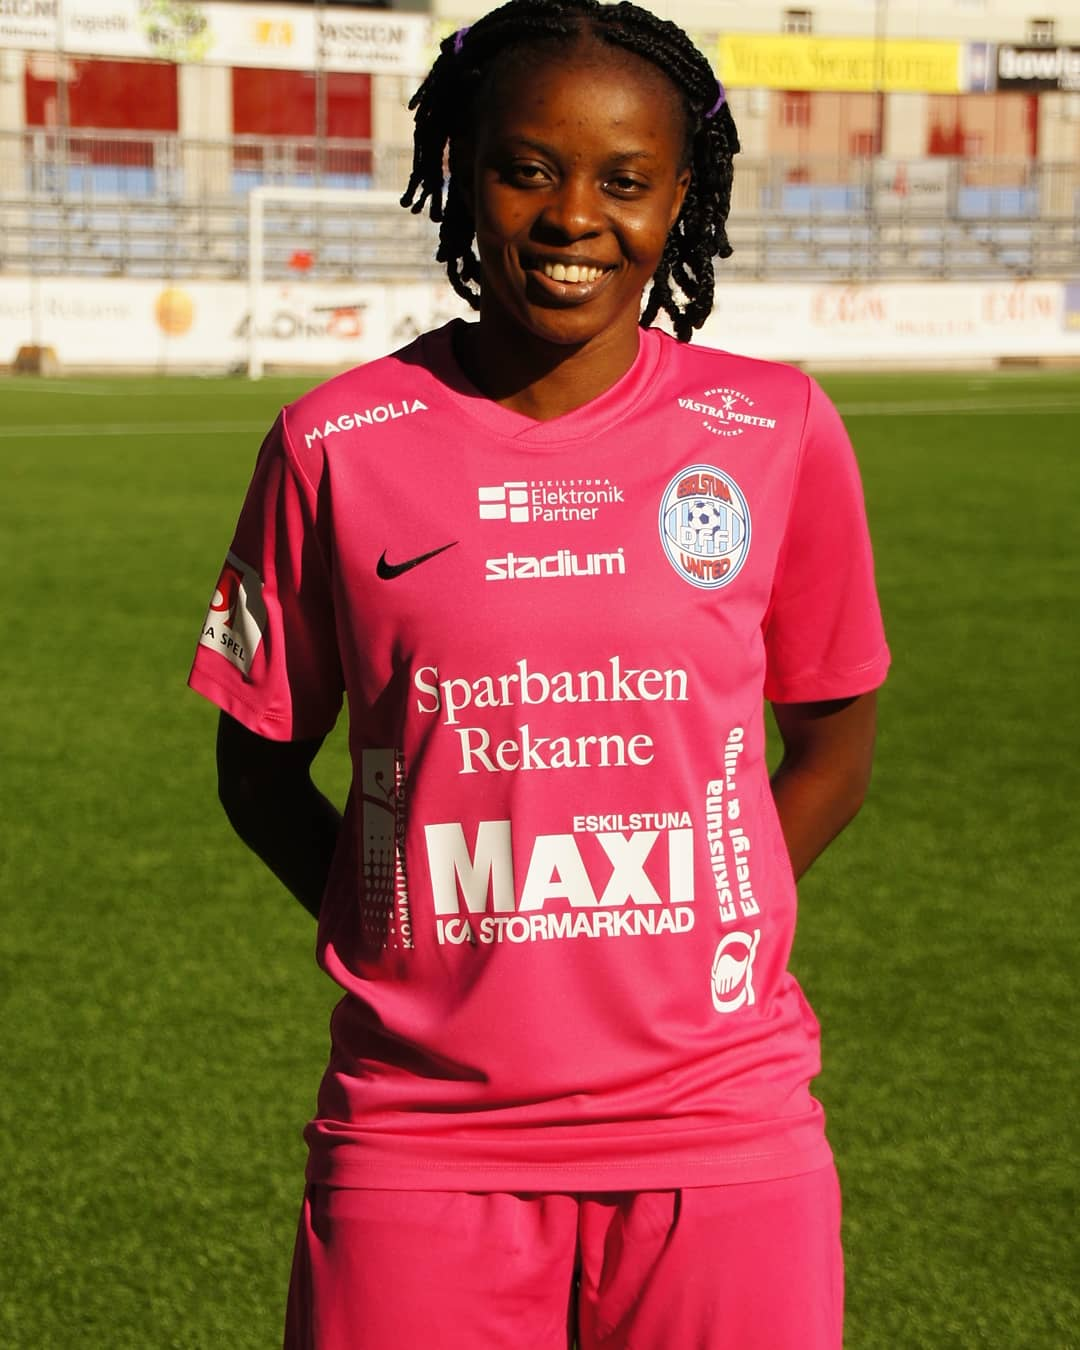 Super Falcons Star Okobi Extends Contract With Swedish Club Eskilstuna Utd